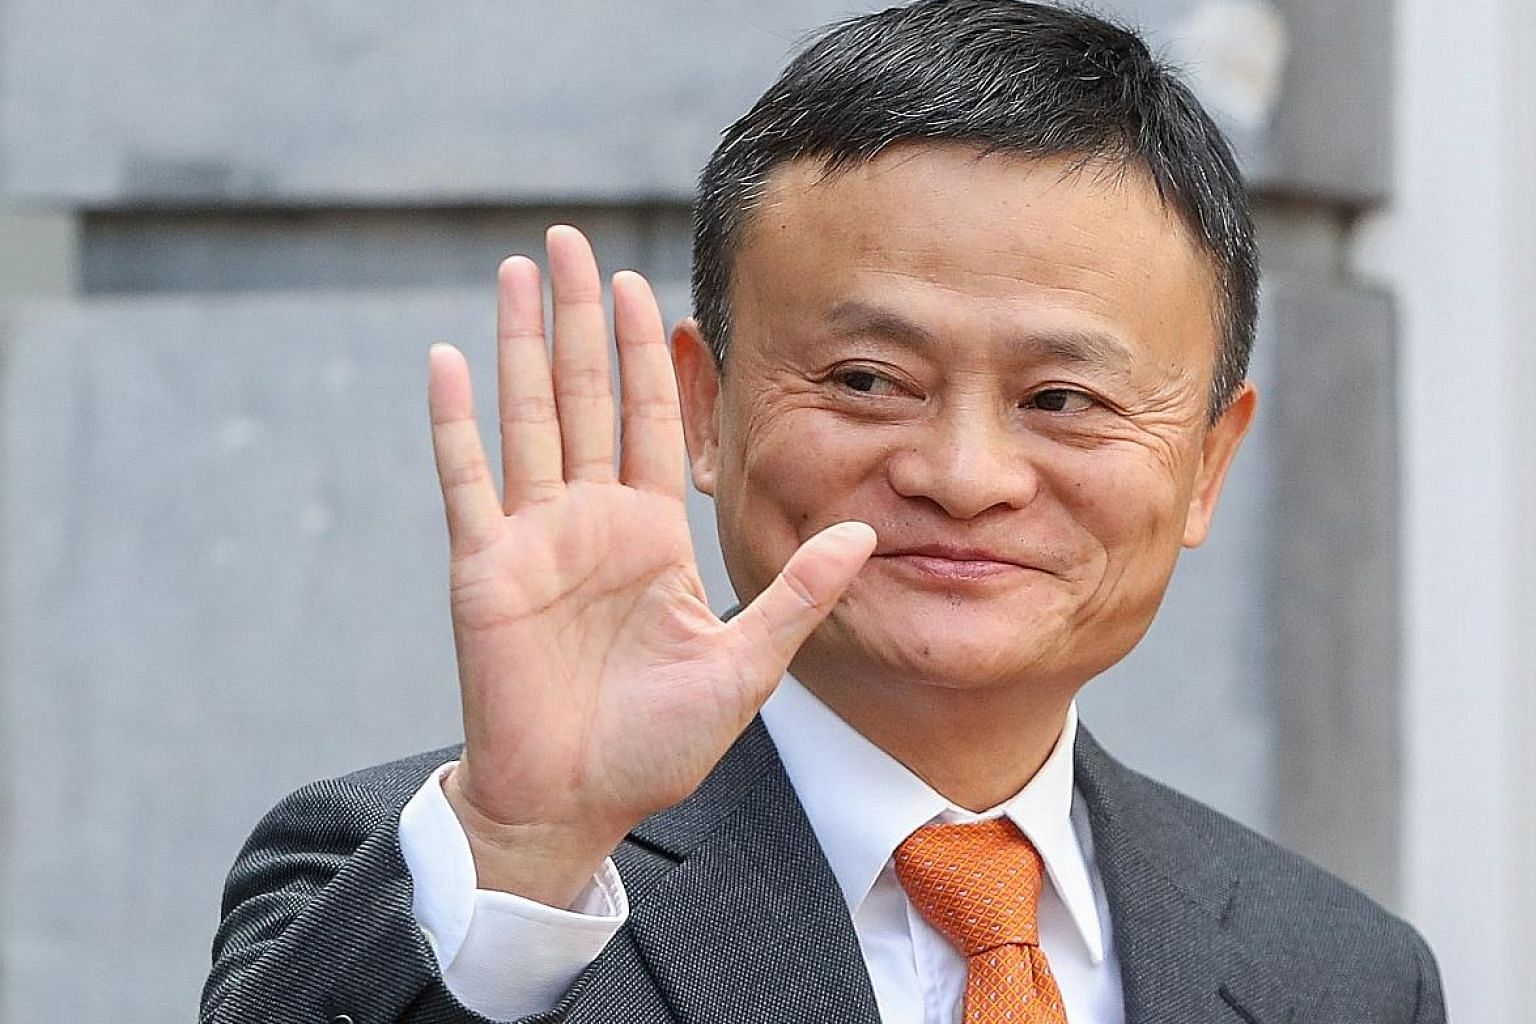 Mr Jack Ma, who turns 54 tomorrow, will remain on Alibaba's board of directors and continue to mentor the company's management.